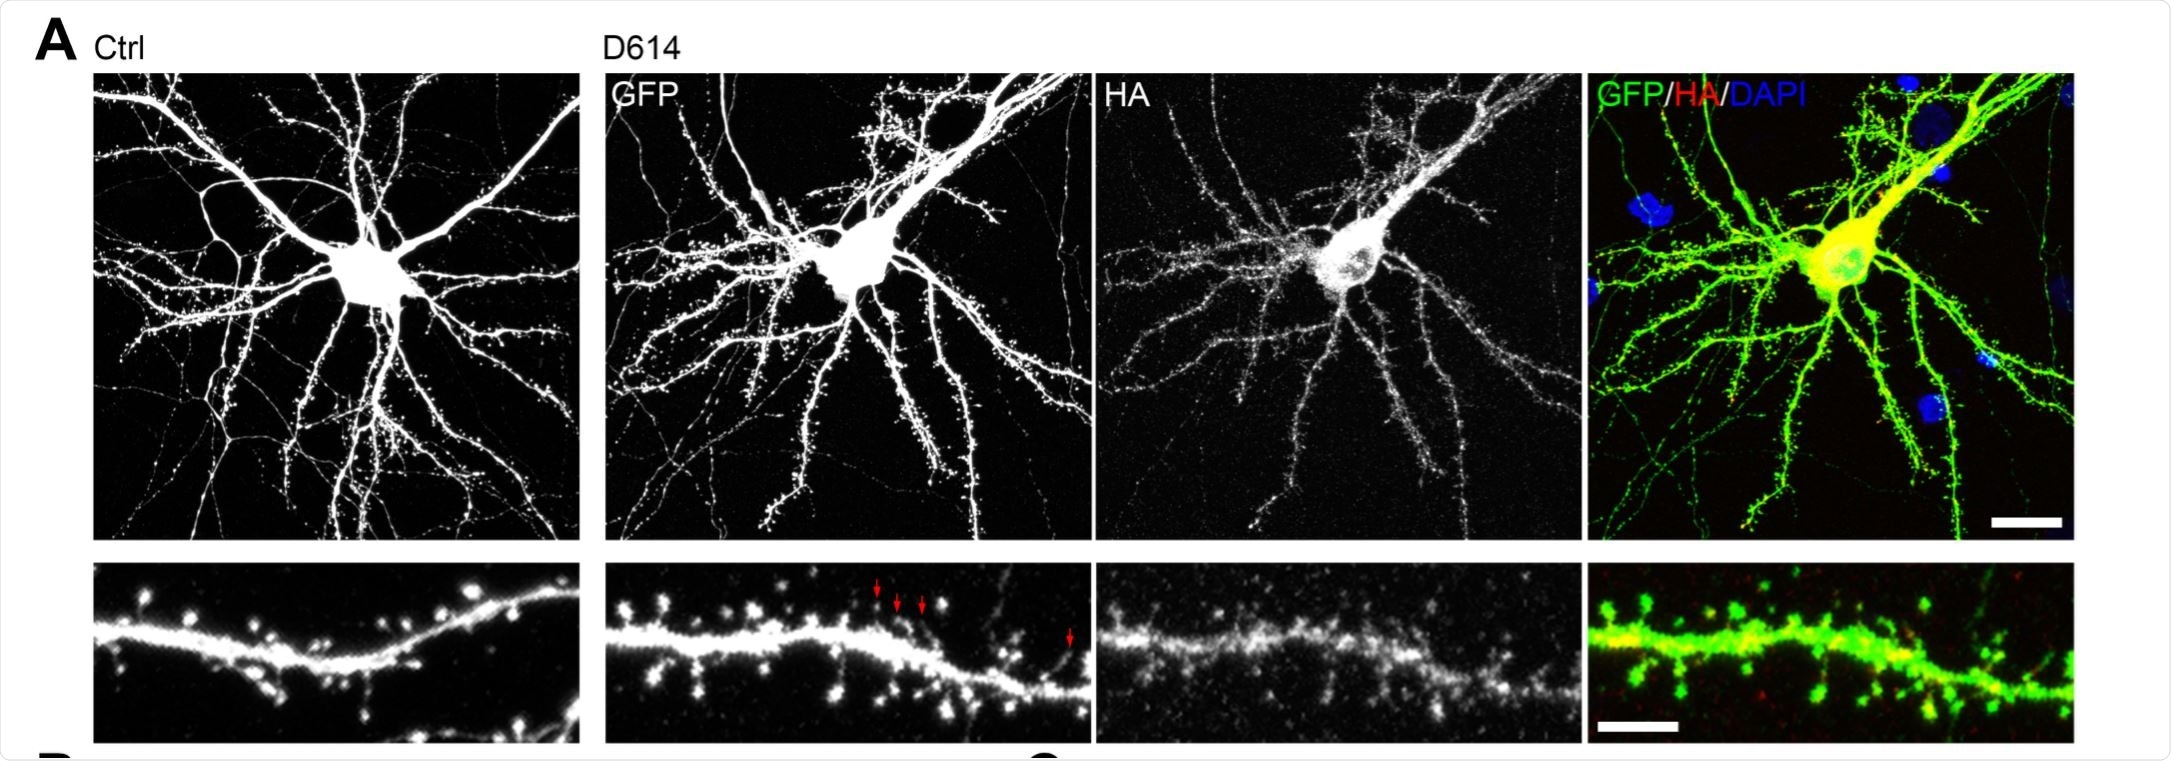 Overexpression of SARS2 spike protein alters the density and morphology of dendritic spines of cultured neurons. (